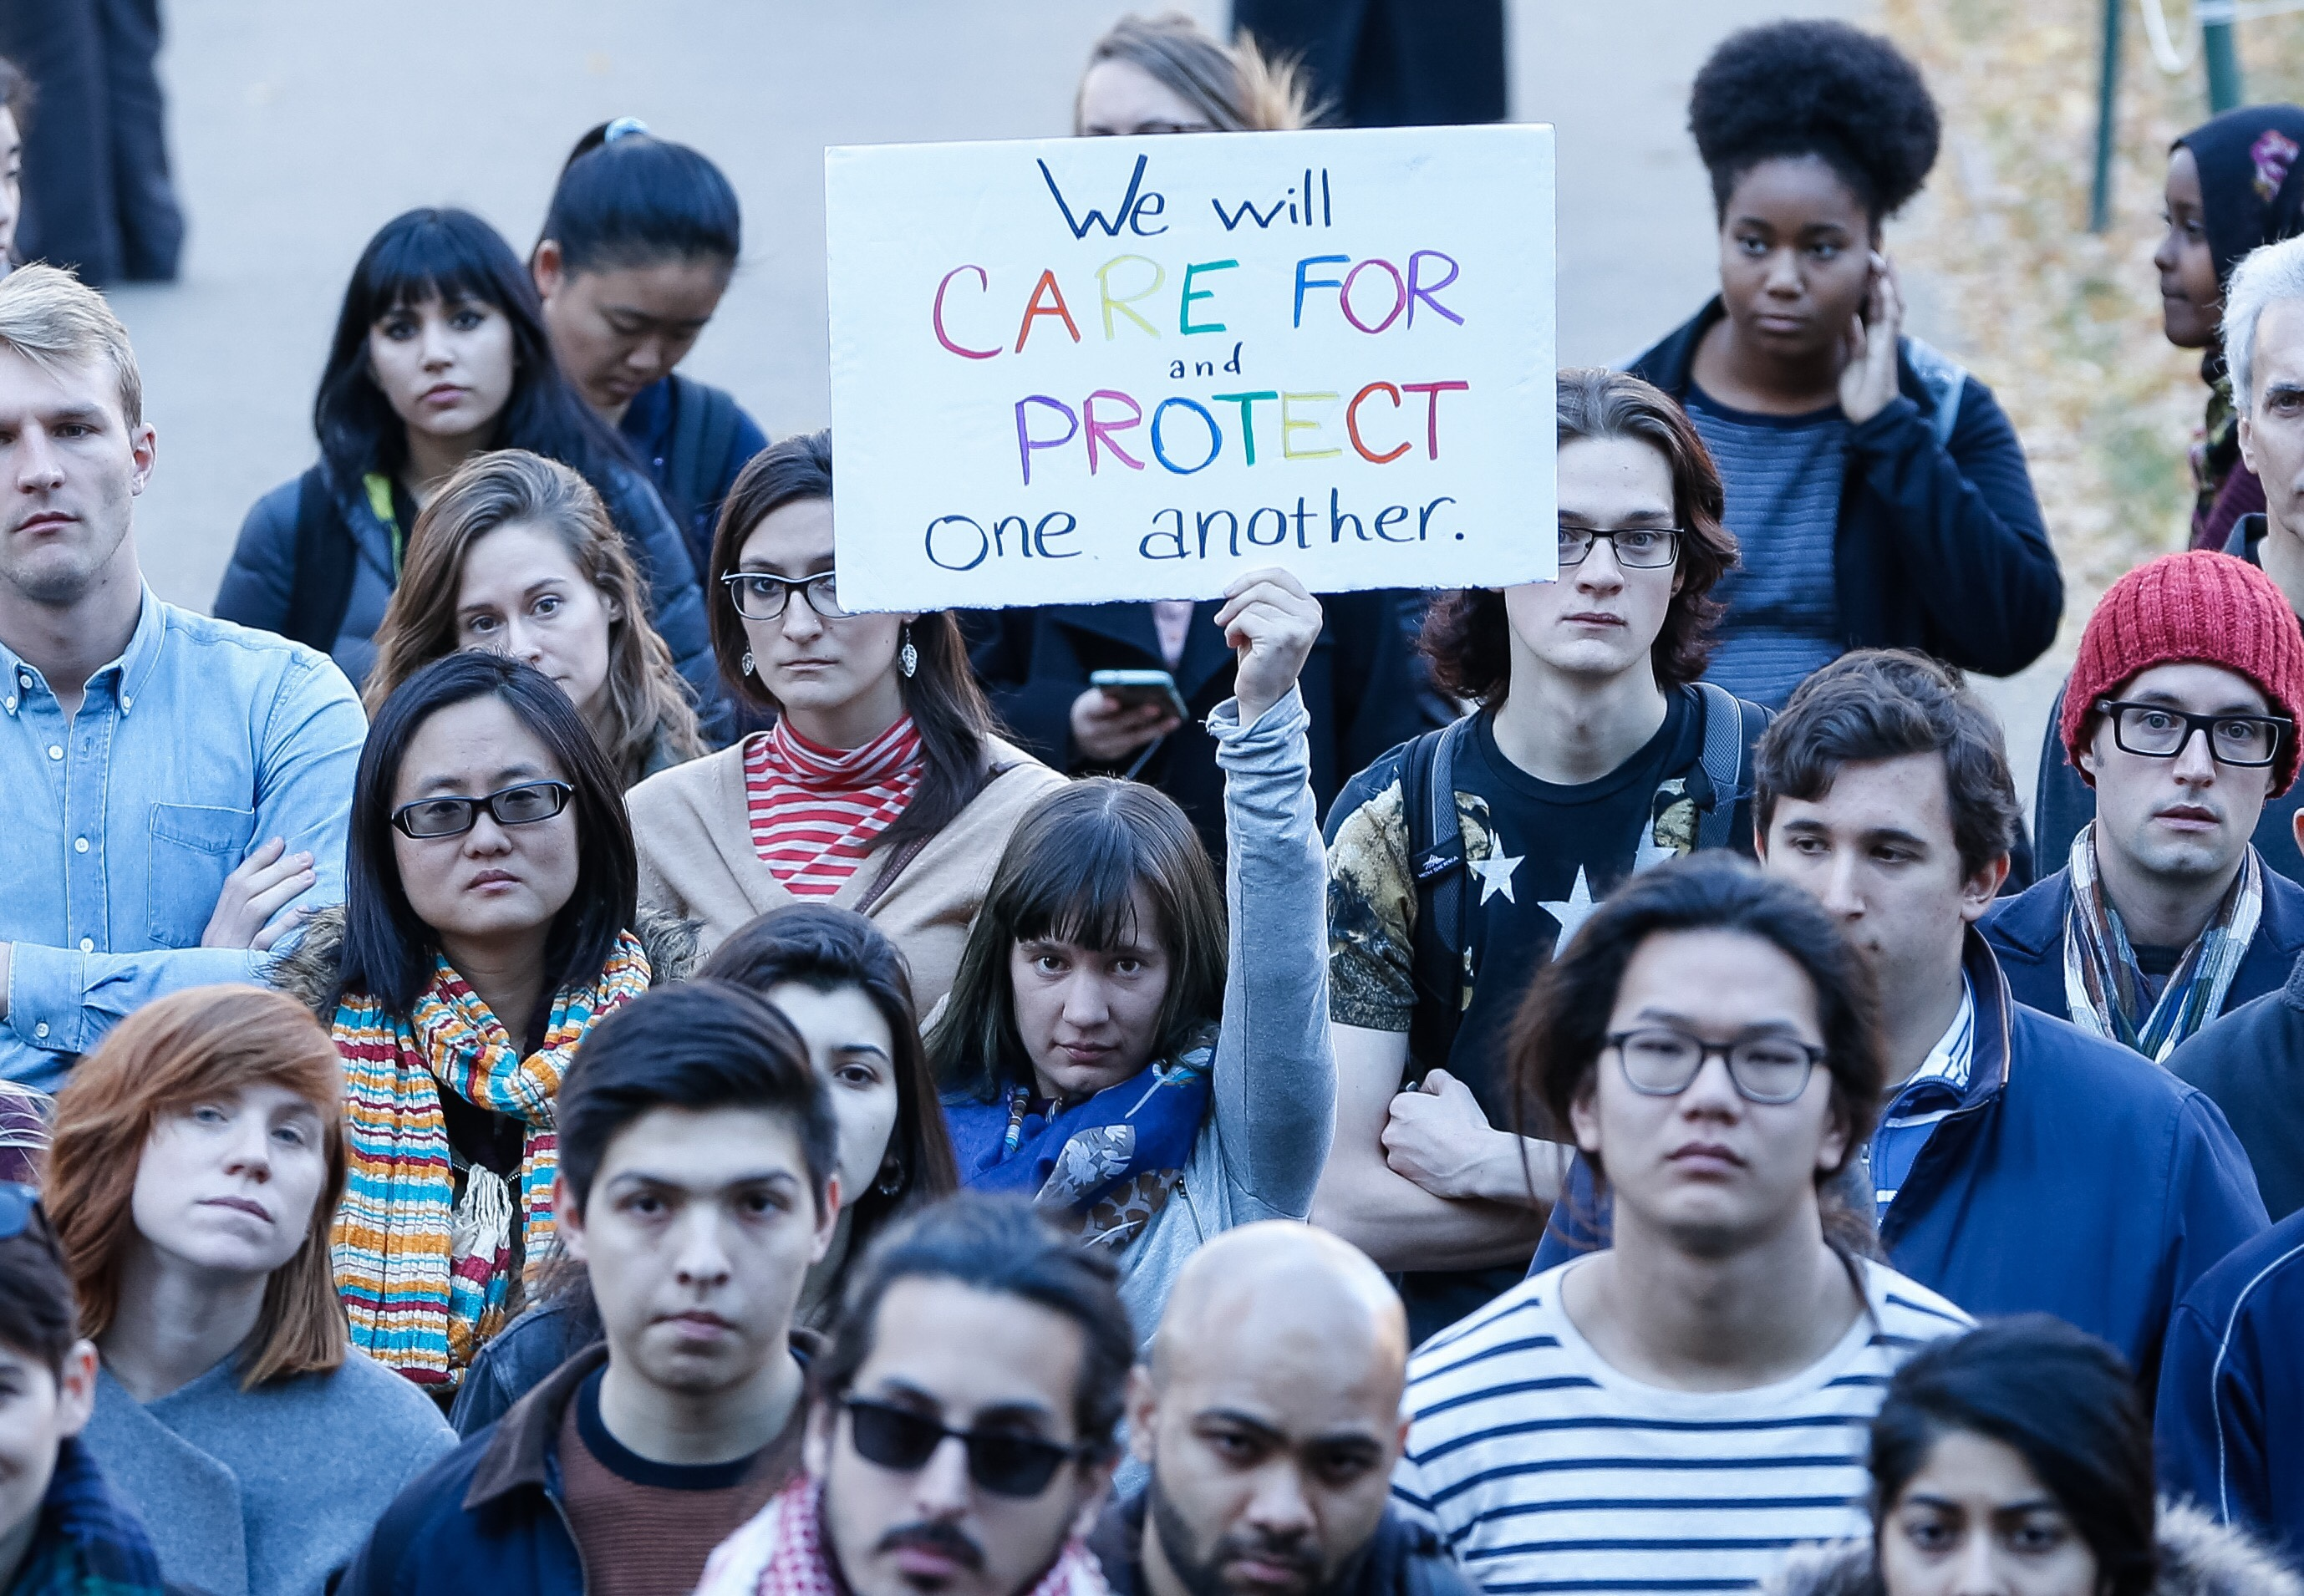 Protesters take part in a rally to show support for and to protect undocumented students at Harvard University on the school's grounds in Cambridge, Mass., on Nov. 14, 2016.